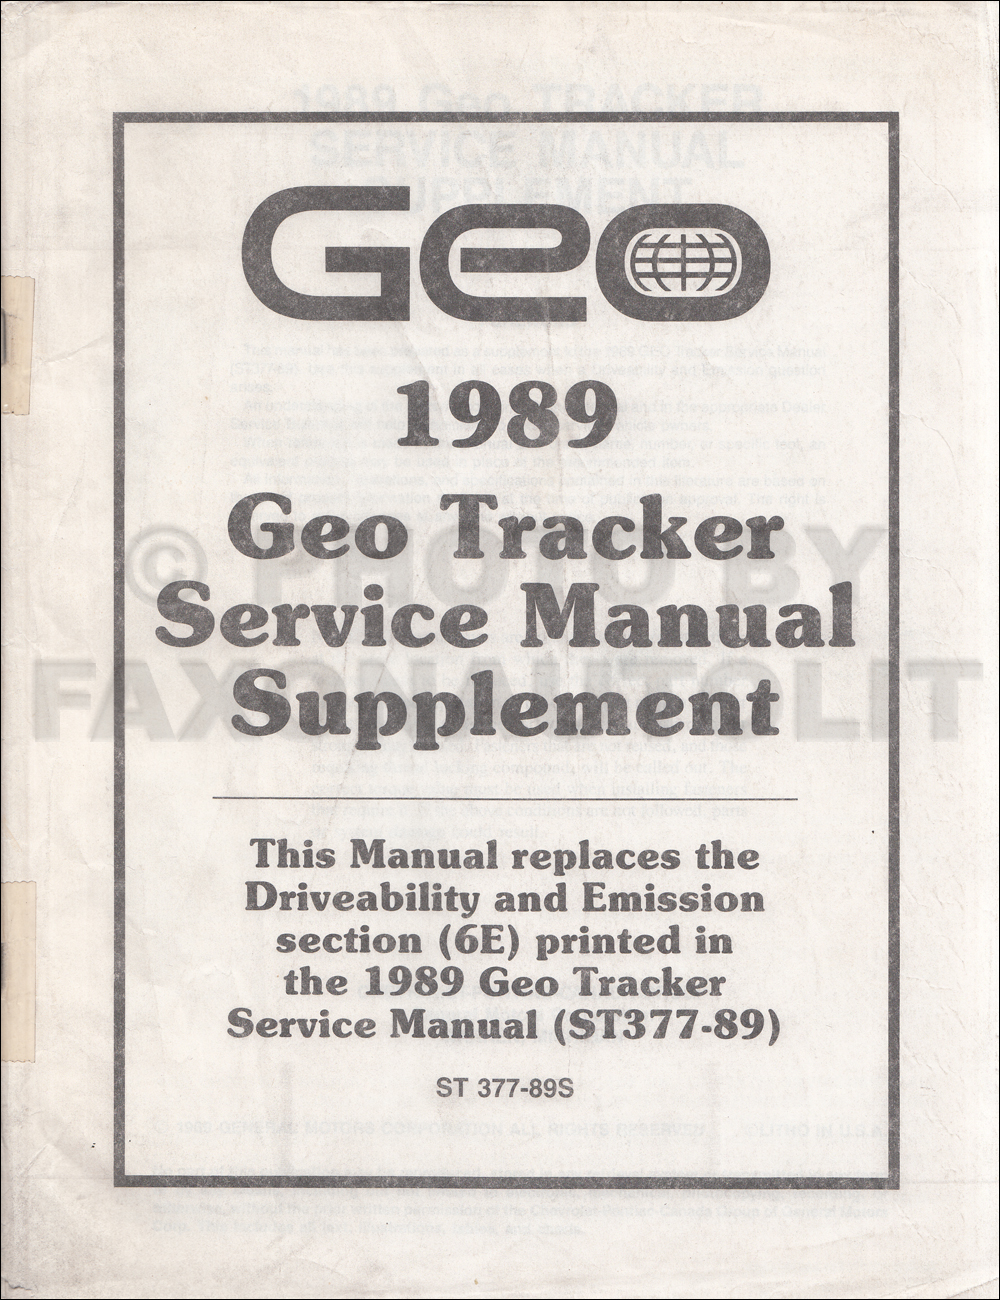 1989 Geo Tracker Driveability/Emission Shop Manual Update Original